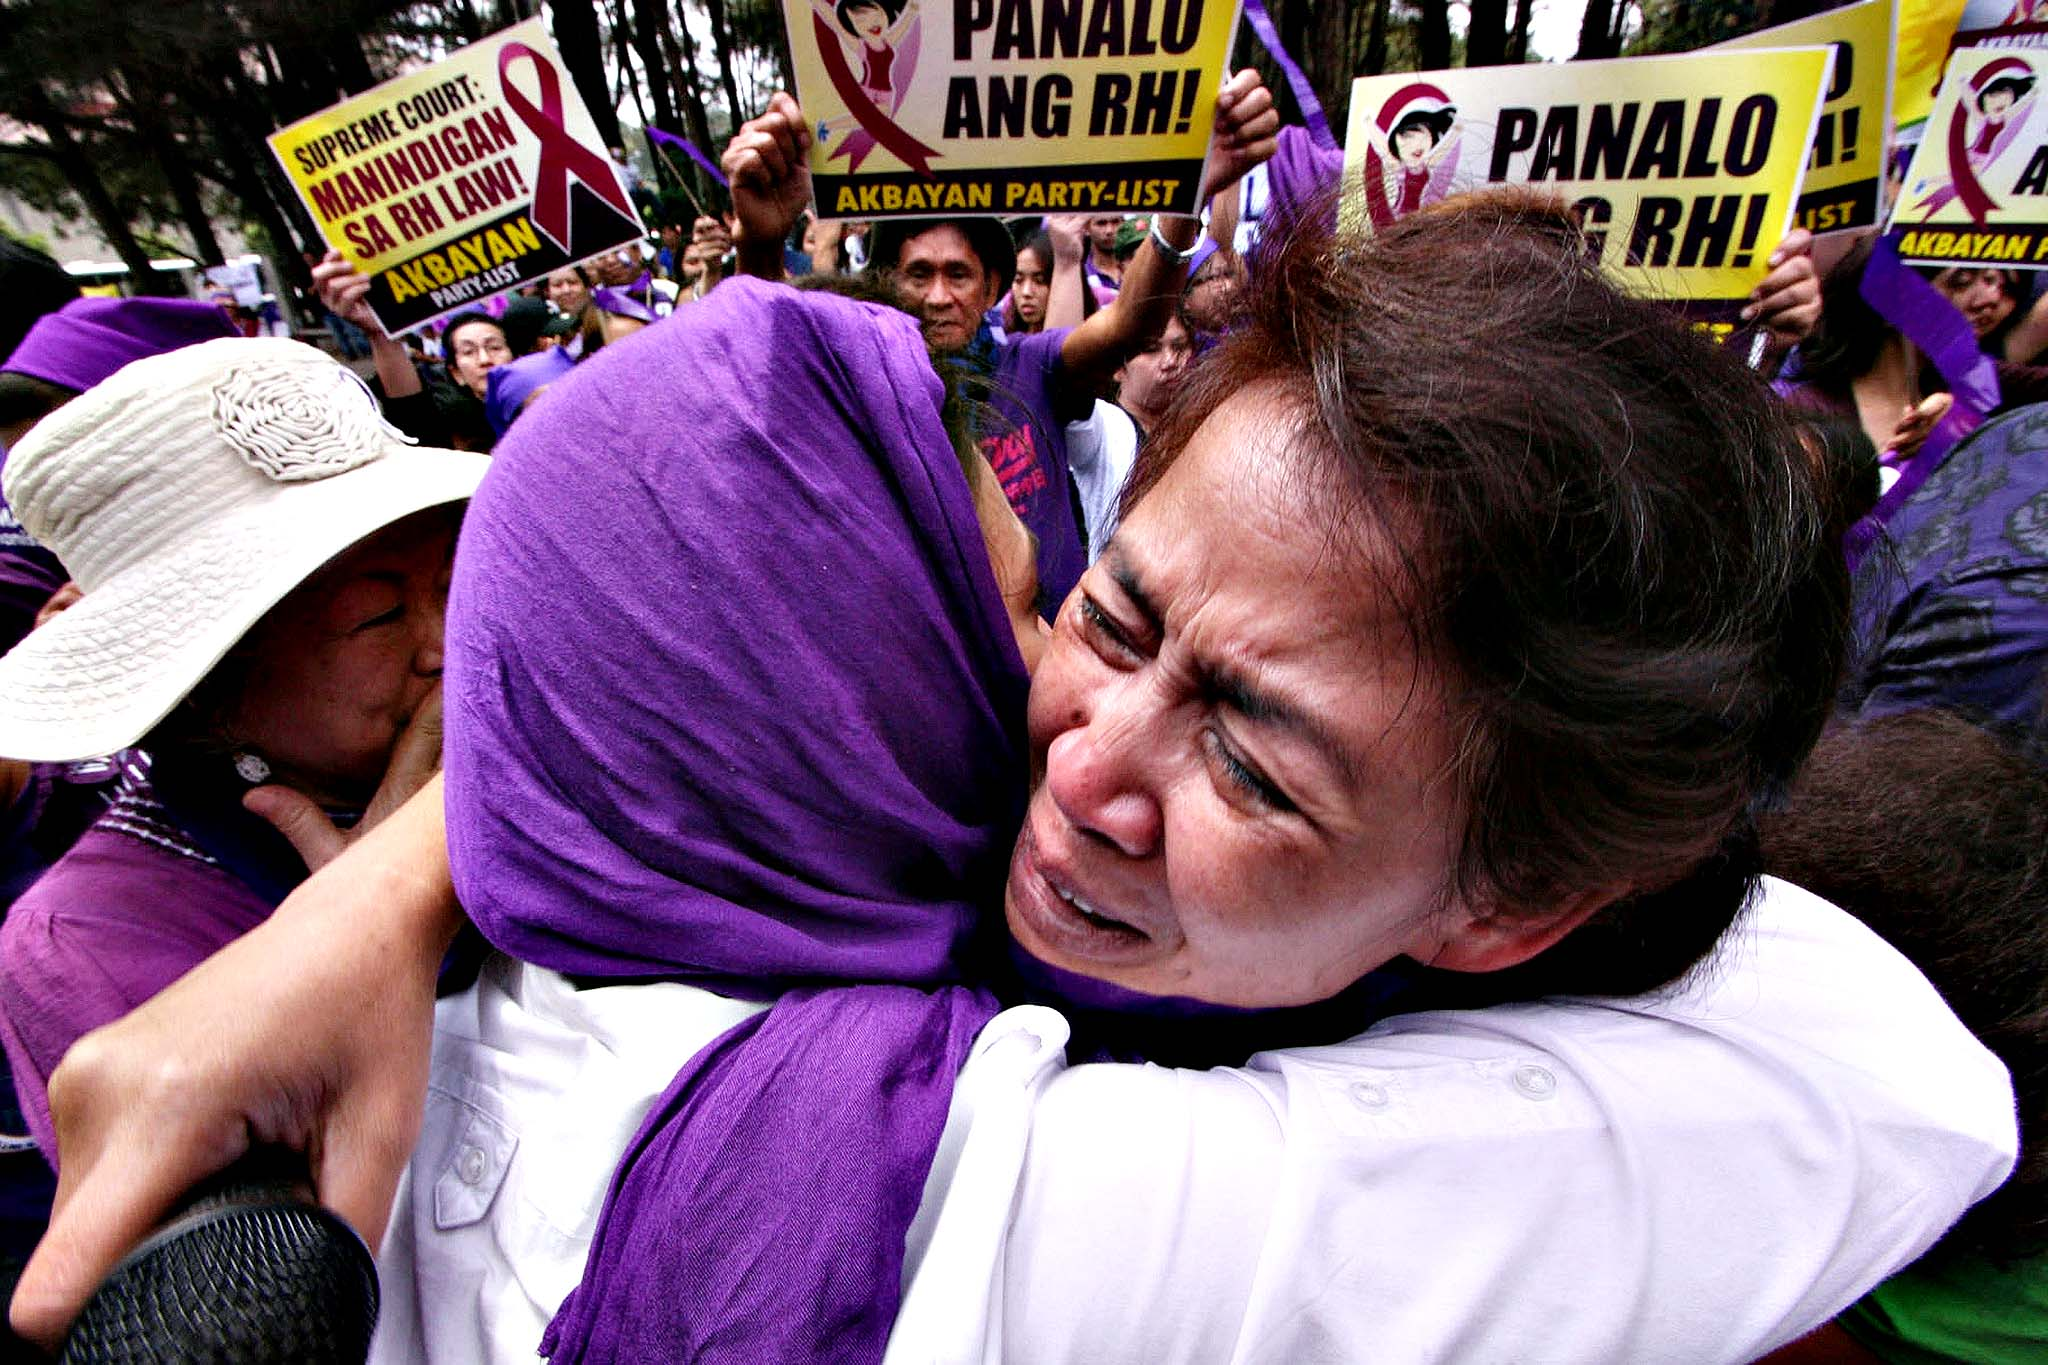 Supporters of the controversial birth control or Reproductive Health (RH) law celebrate in front of the court's summer residence in Baguio City, Trinidad province, north of Manila on April 8, 2014, after the Philippine supreme court declared it as not unconstitutional. The Philippines' highest court approved on April 8, a controversial birth control law that supporters said would transform the lives of millions of poor Filipinos, in a stunning defeat for the powerful Catholic Church.